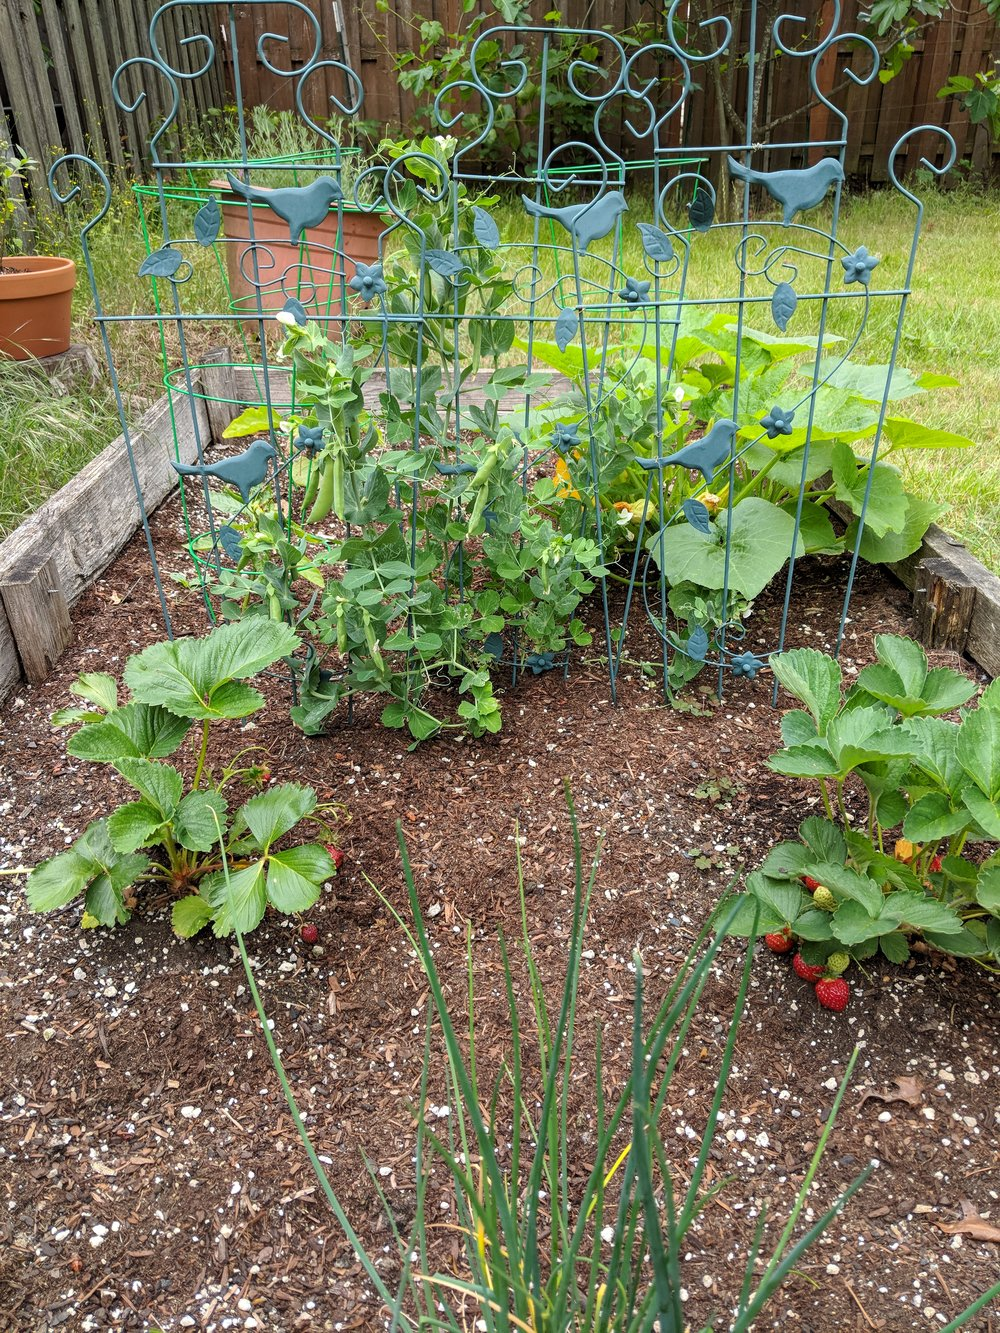 My raised bed - growing chives, strawberries, peas, and squash - is thriving in the rainy PNW. My pollinators are not doing so well.